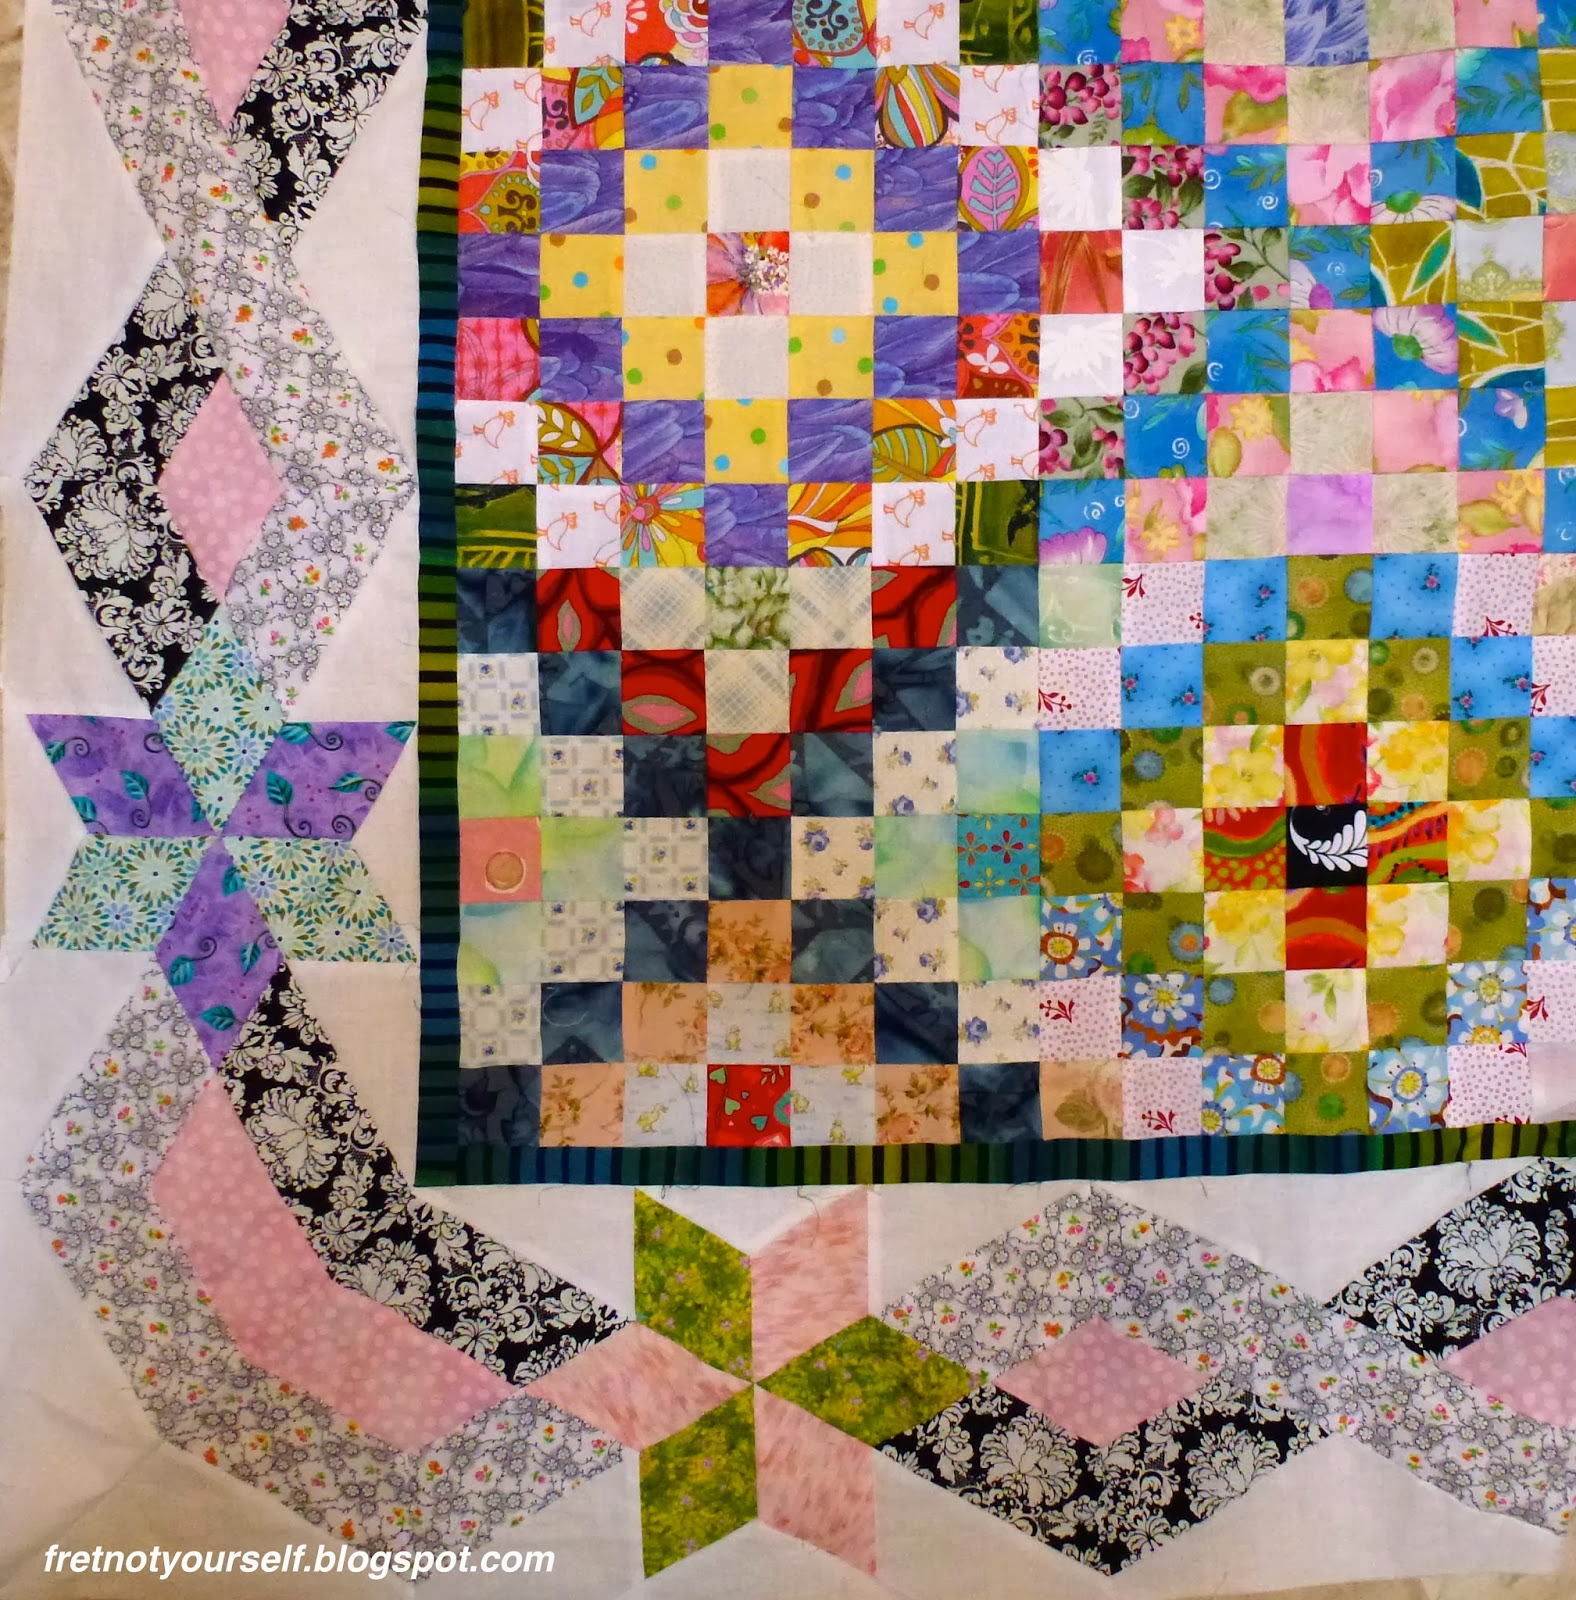 Multi-colored quilt in a Trip Around the World variation; narrow green and black inner border; larger outer border of stars with braided black and white fabrics.